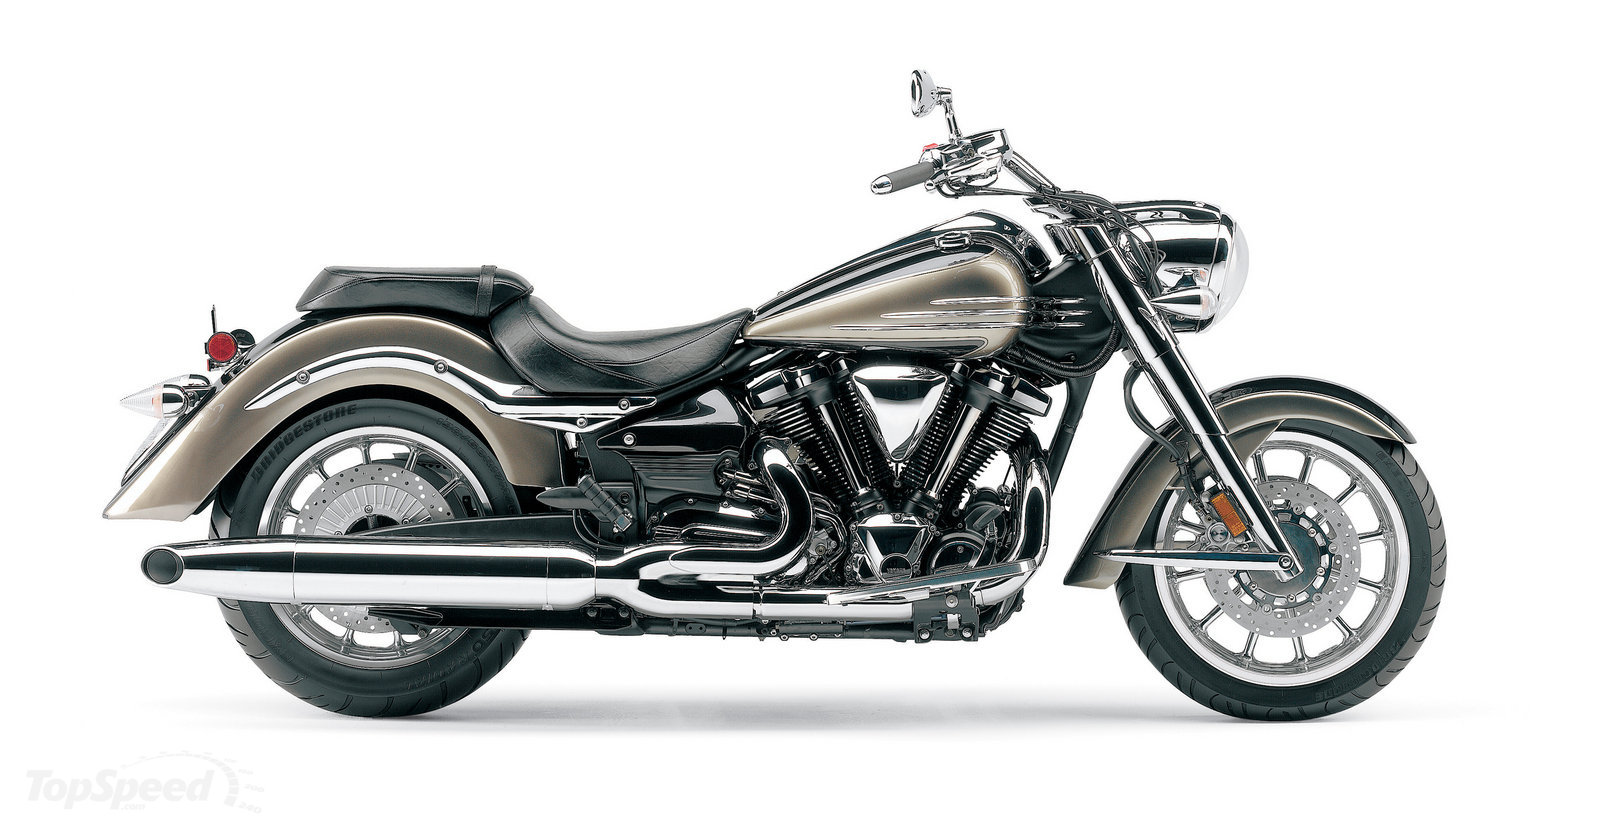 2006 yamaha roadliner s picture 46318 motorcycle for 2006 yamaha stratoliner review